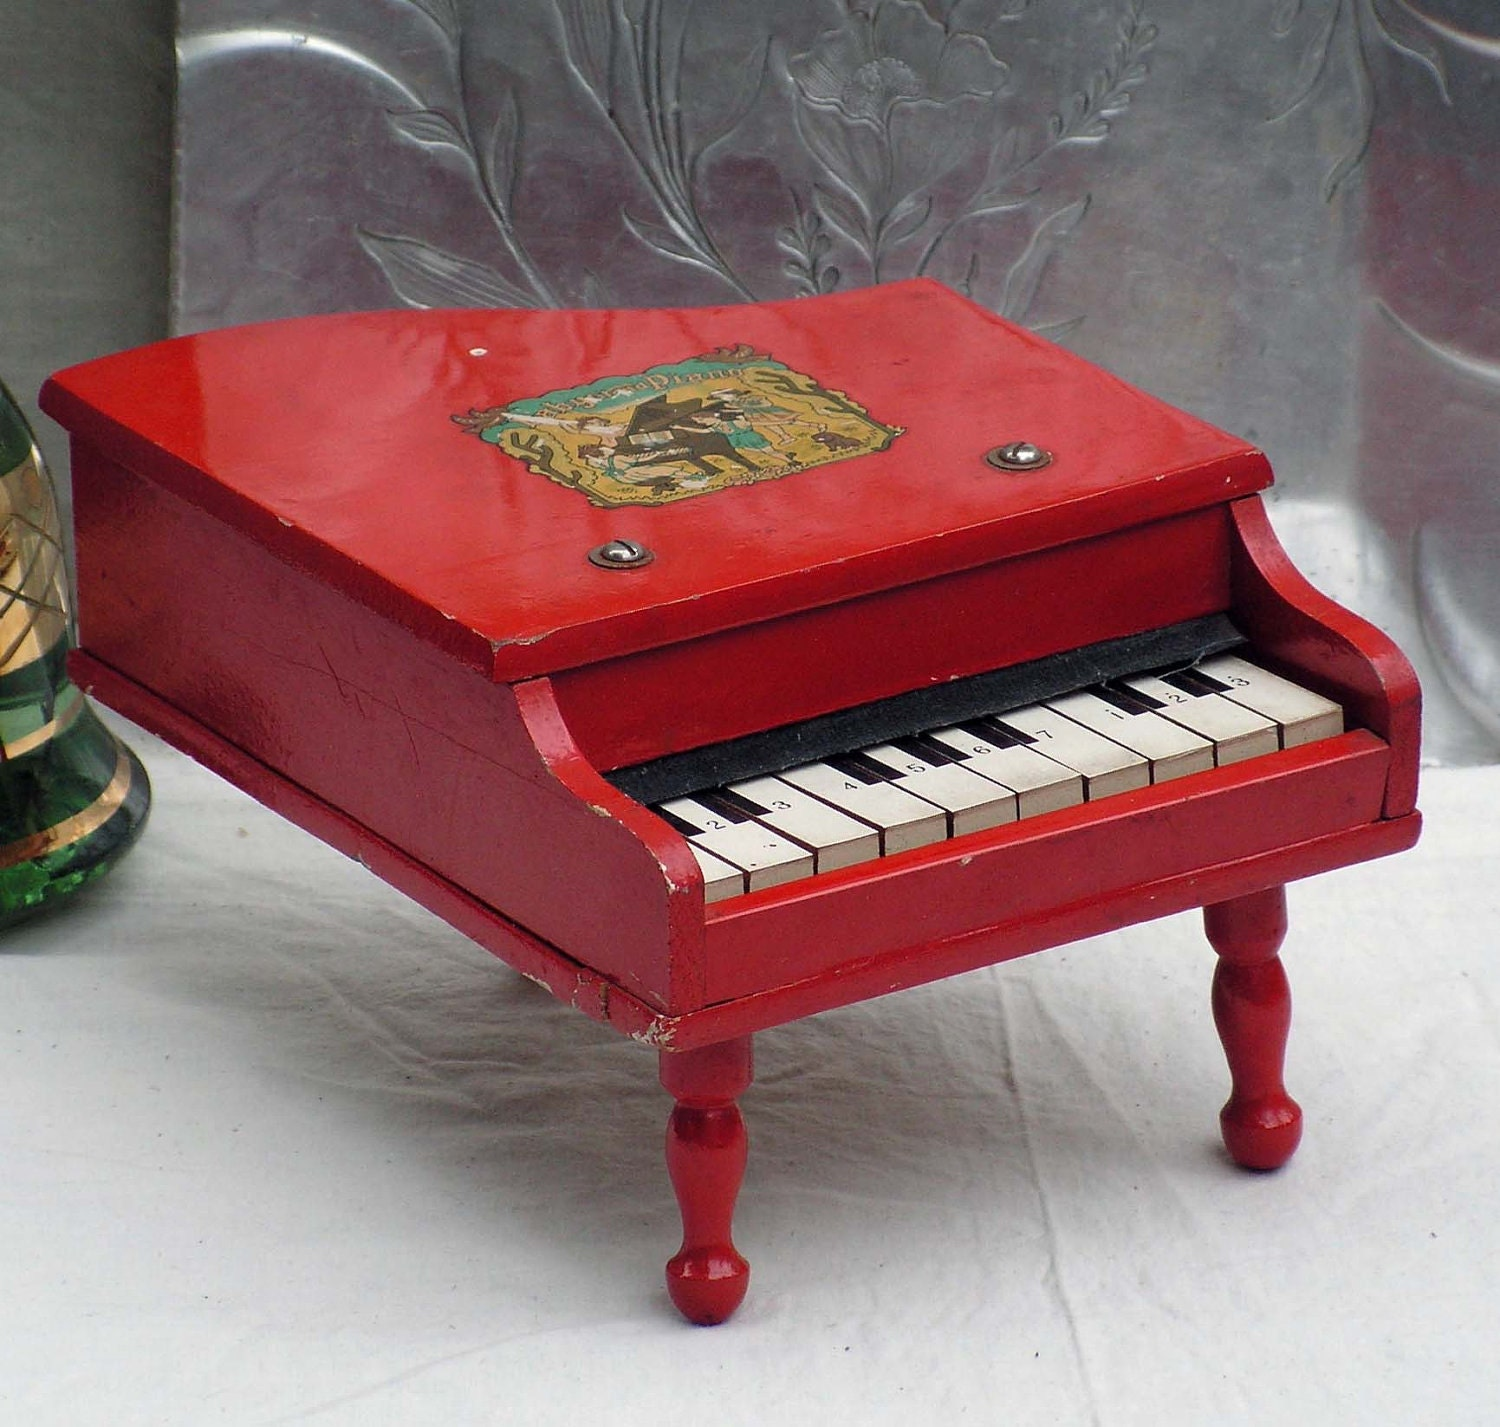 Red Baby Grand Piano Vintage Wooden Toy Home Decor Japan 1950s